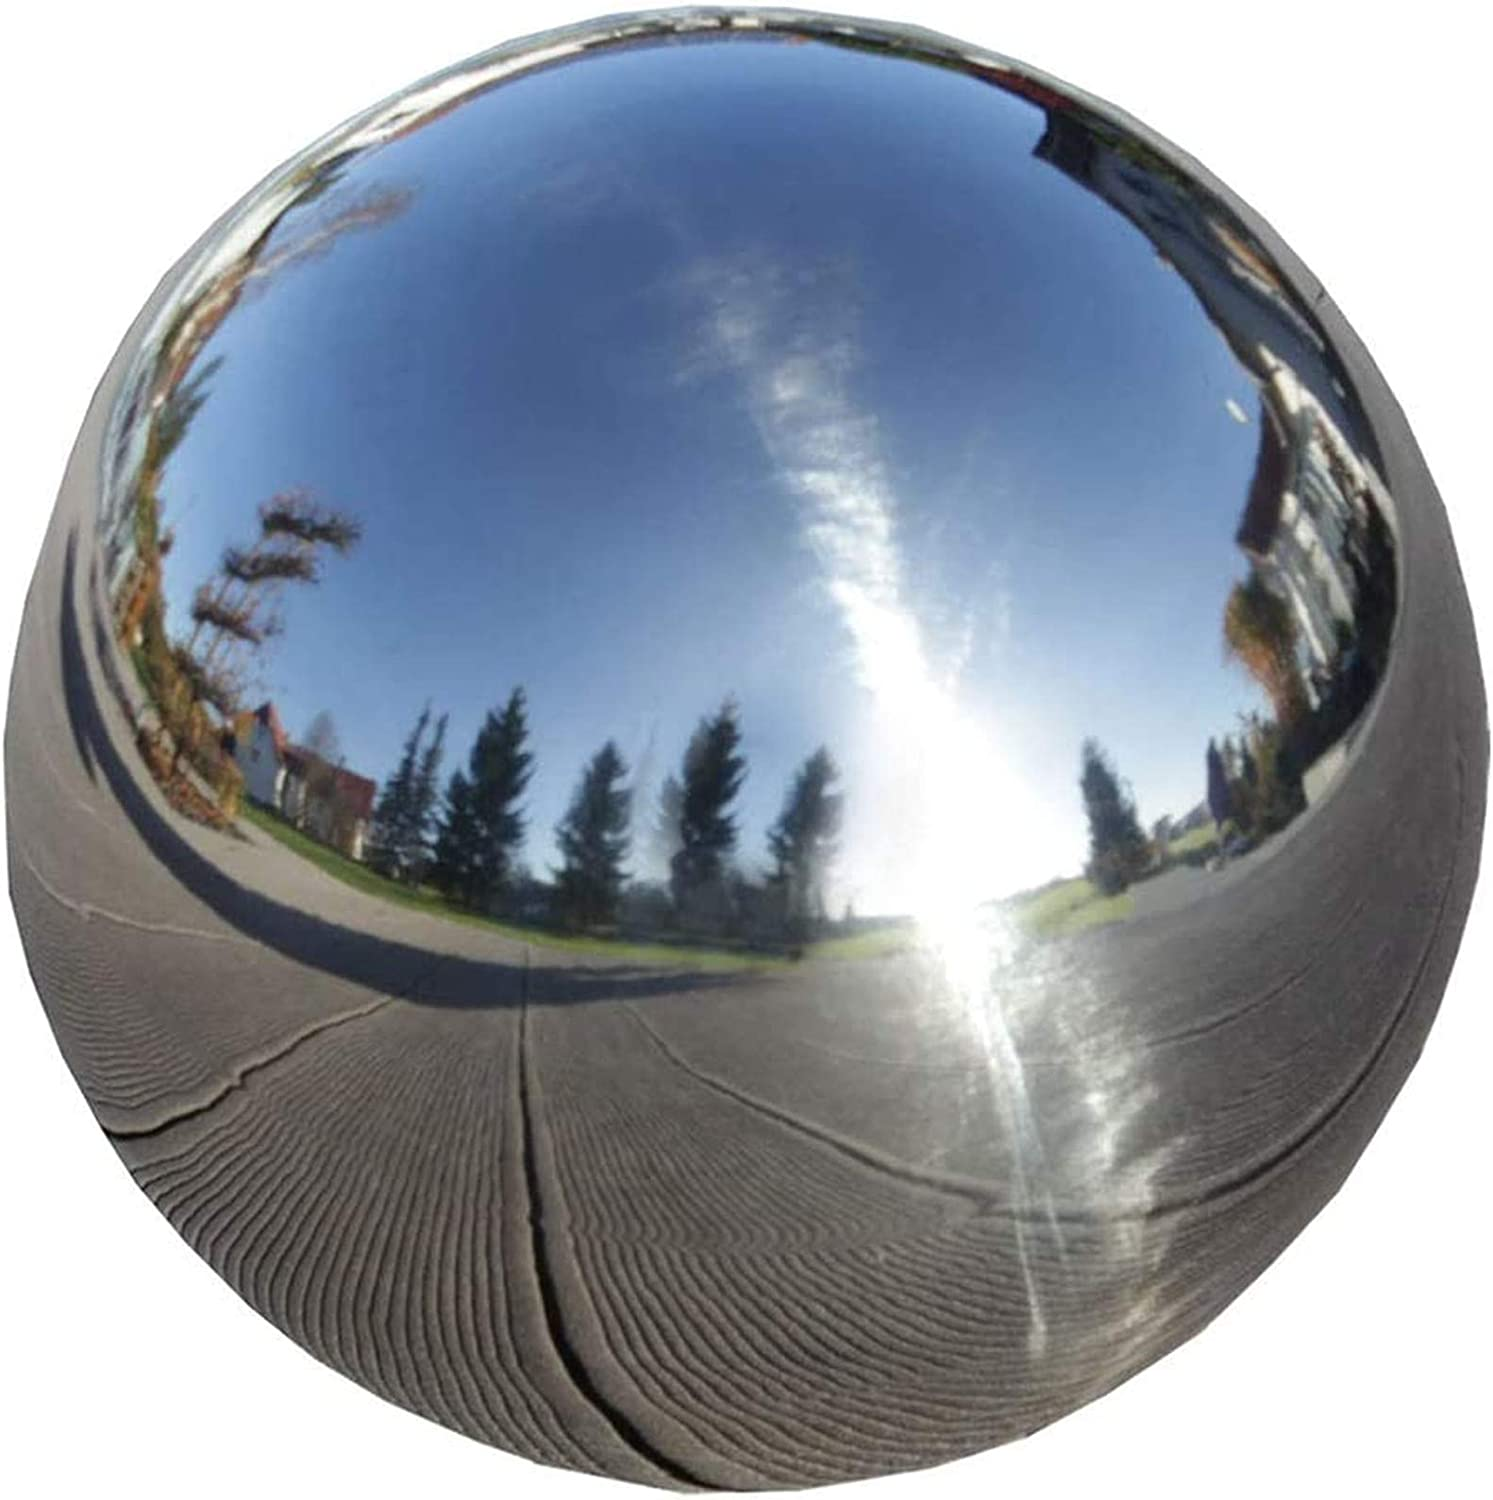 Stainless Steel Gazing Globe 12 8 inch Sta Durable Seasonal Wrap Introduction 6 Max 46% OFF